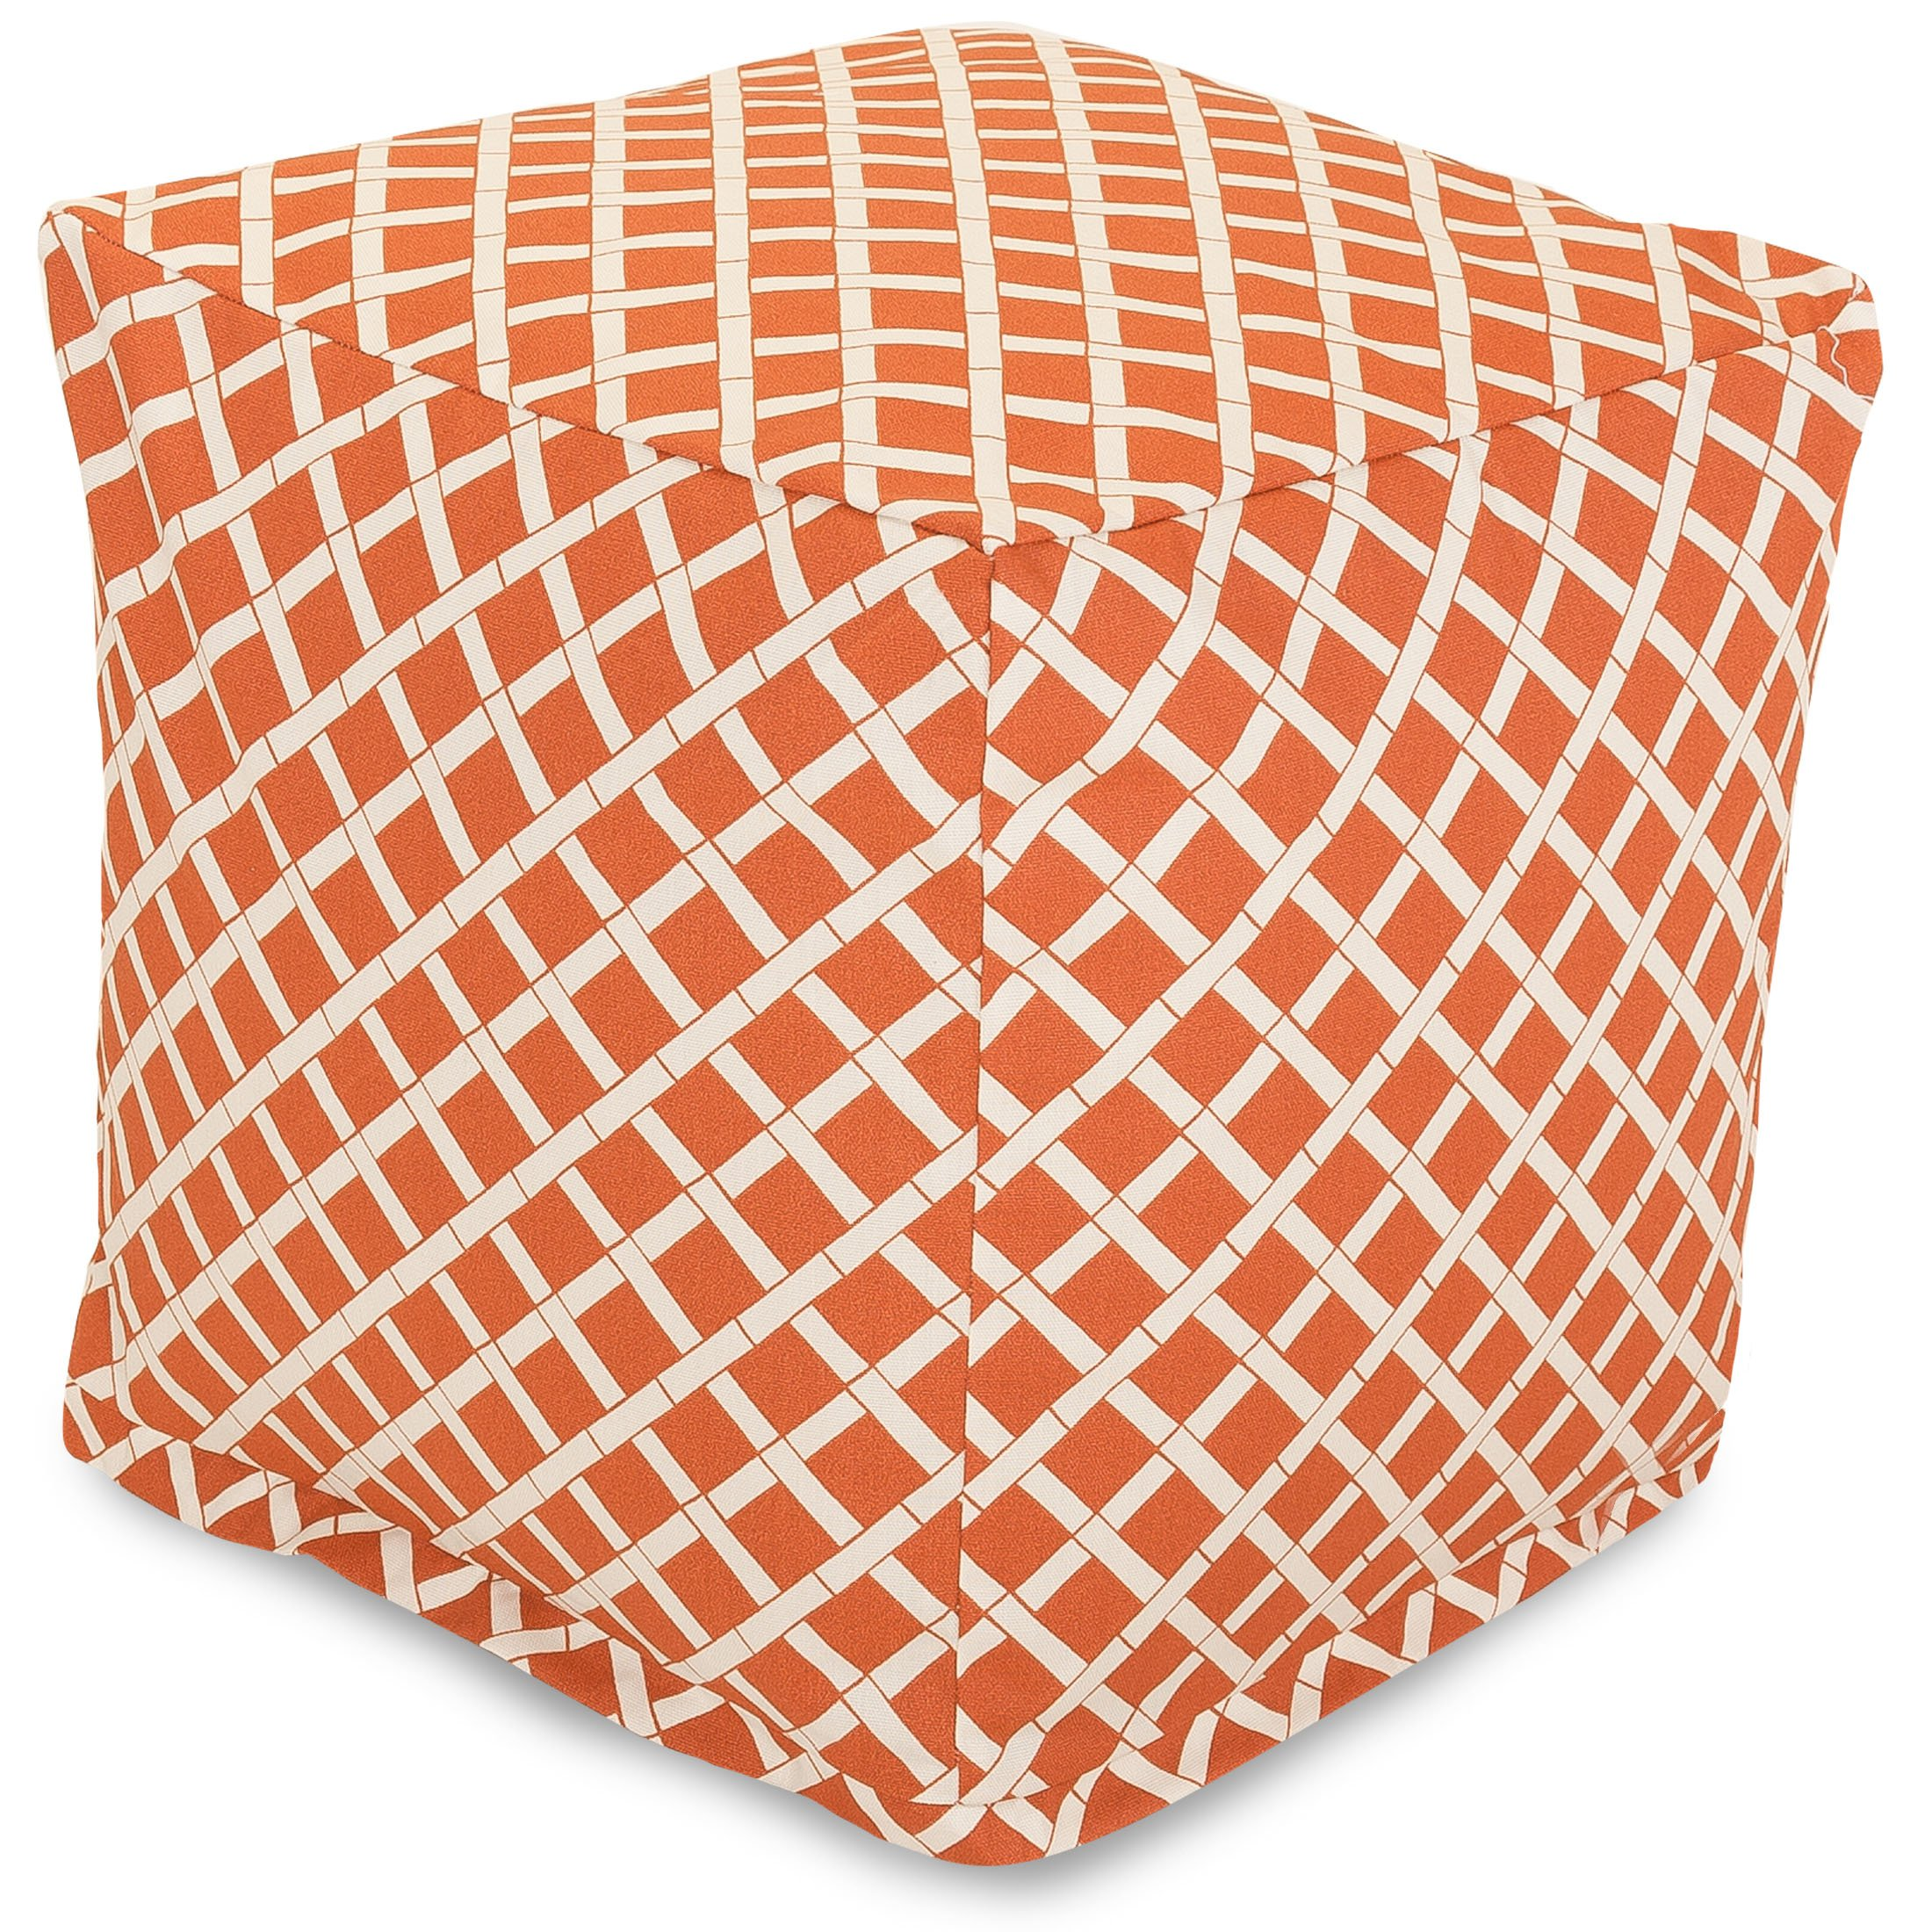 Majestic Home Goods Burnt Orange Bamboo Cube, Small